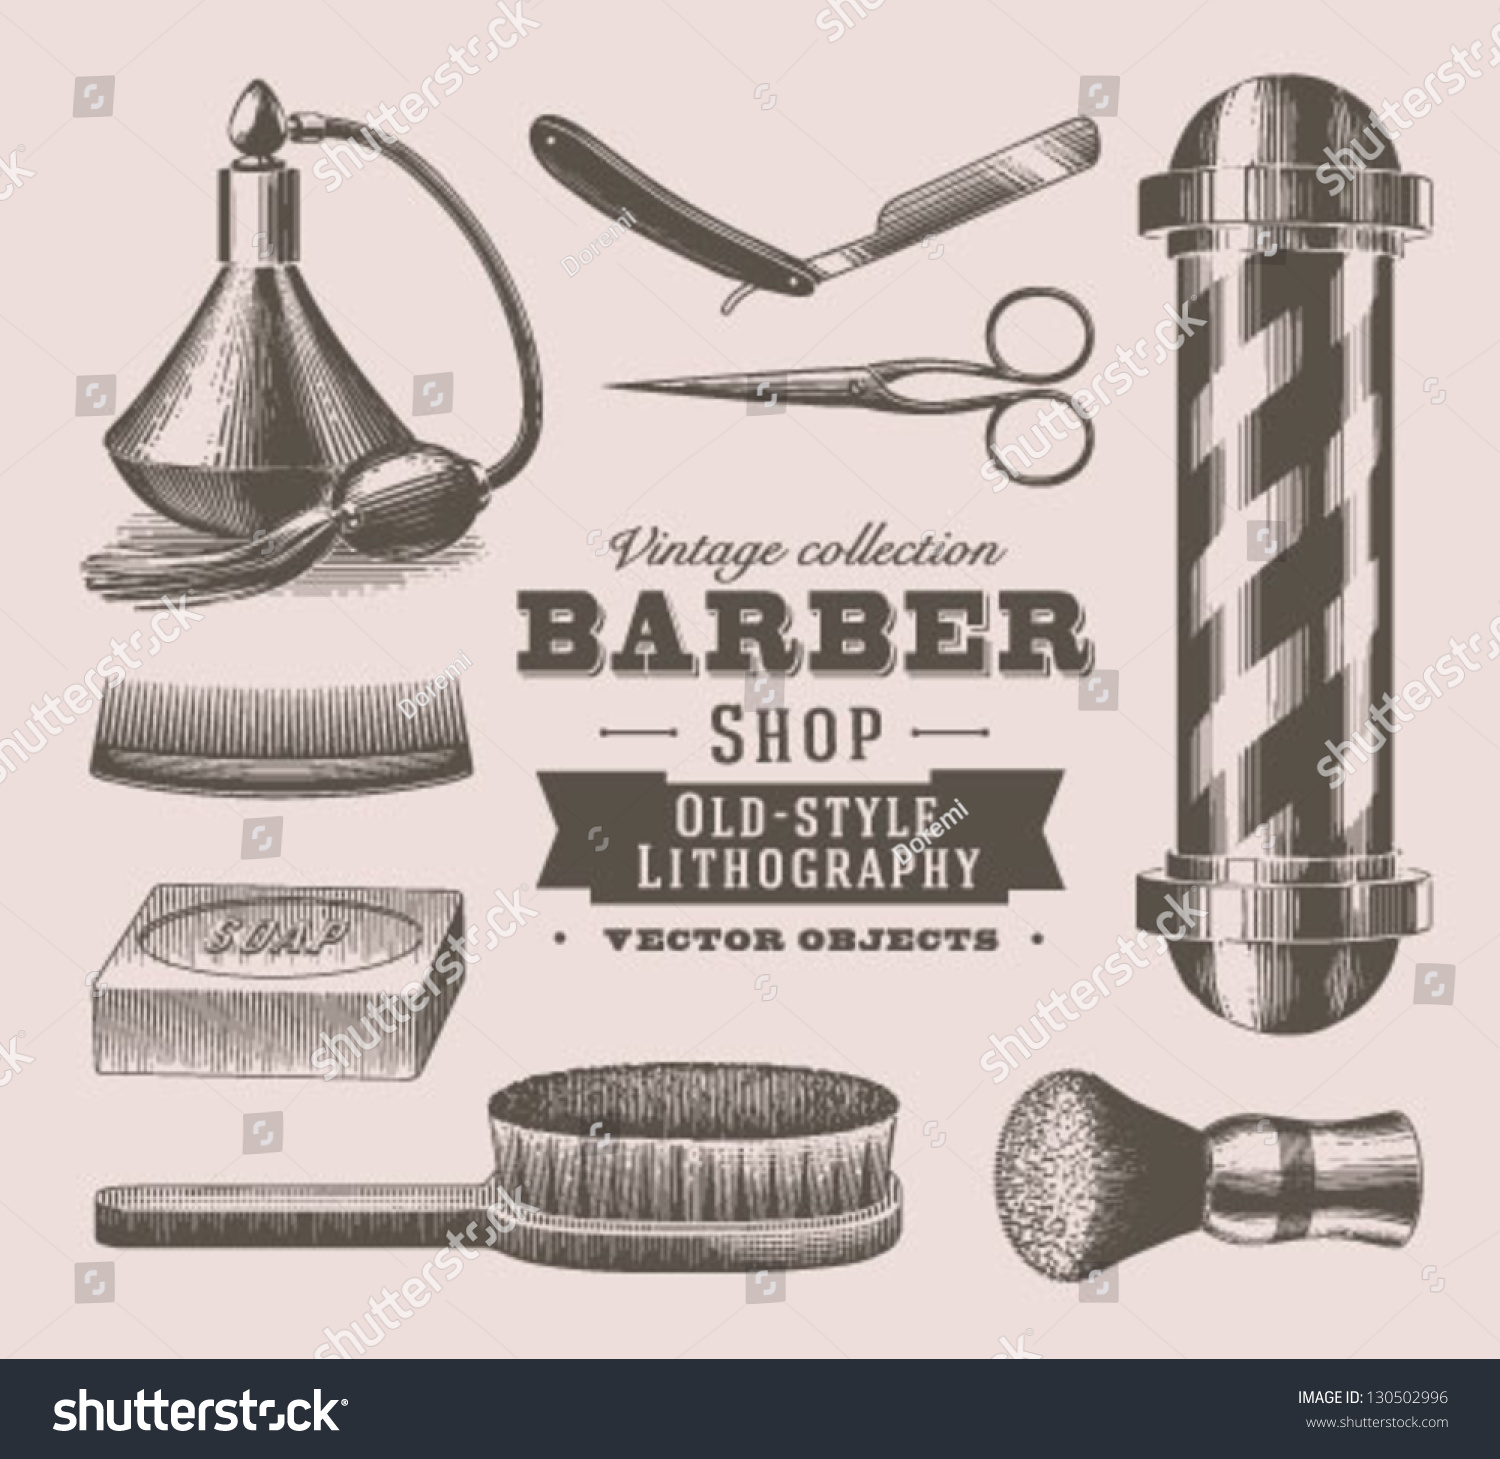 Barber Terminology : Vintage Barber Shop Objects Stock Vector Illustration 130502996 ...